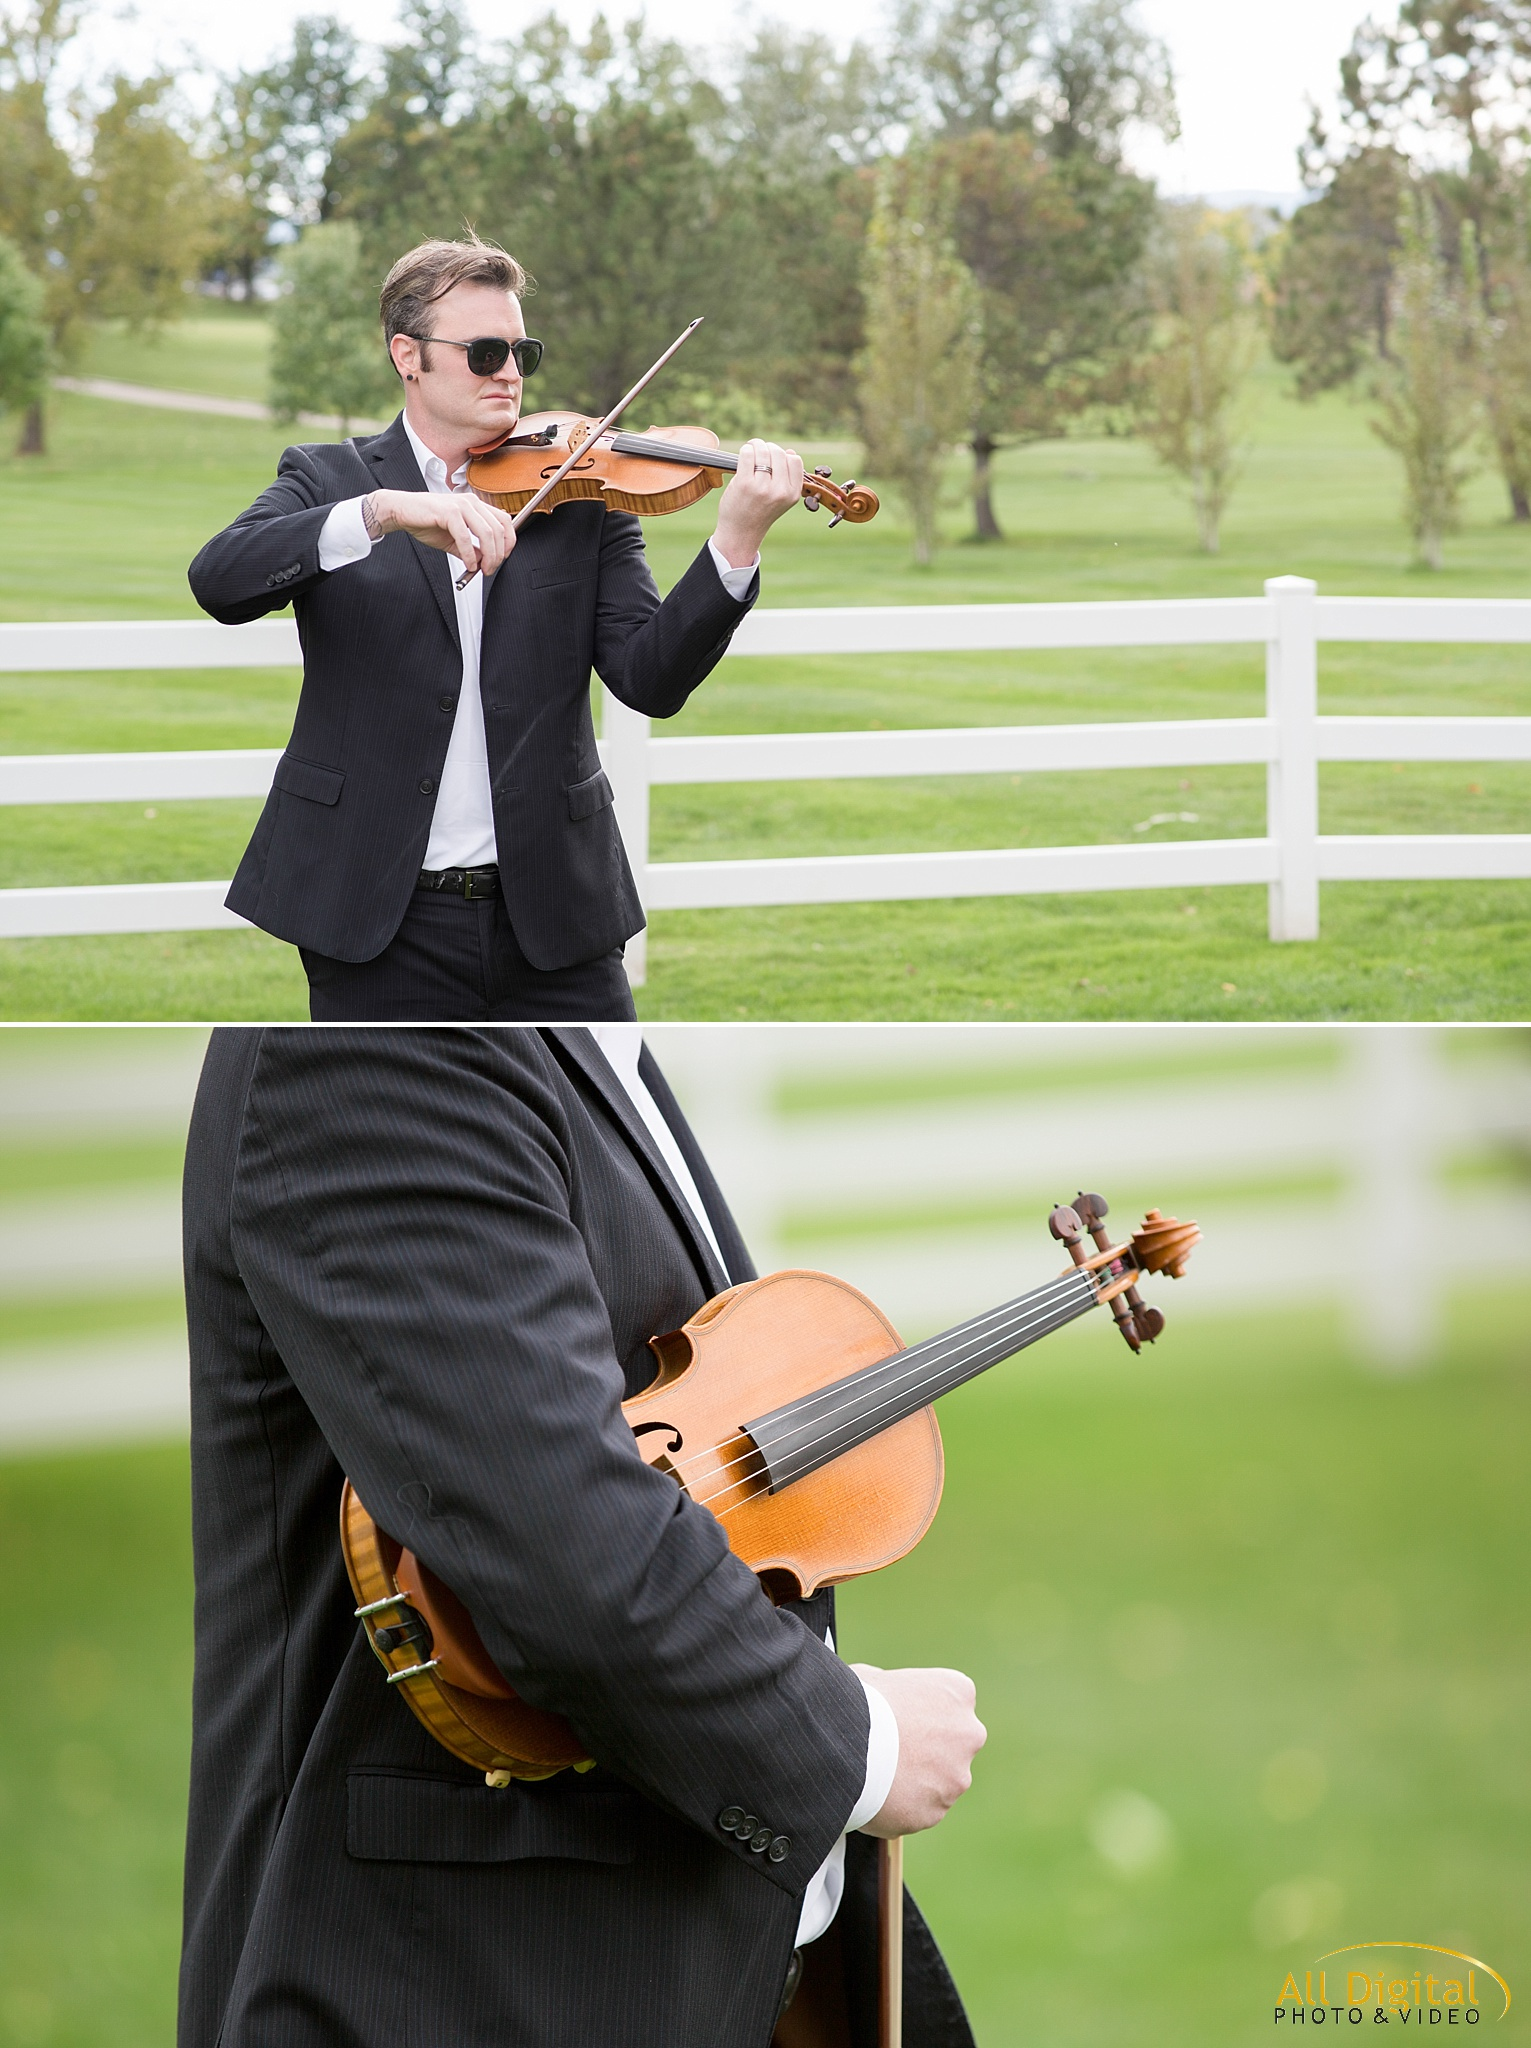 Violinist playing music for the ceremony at Raccoon Creek.